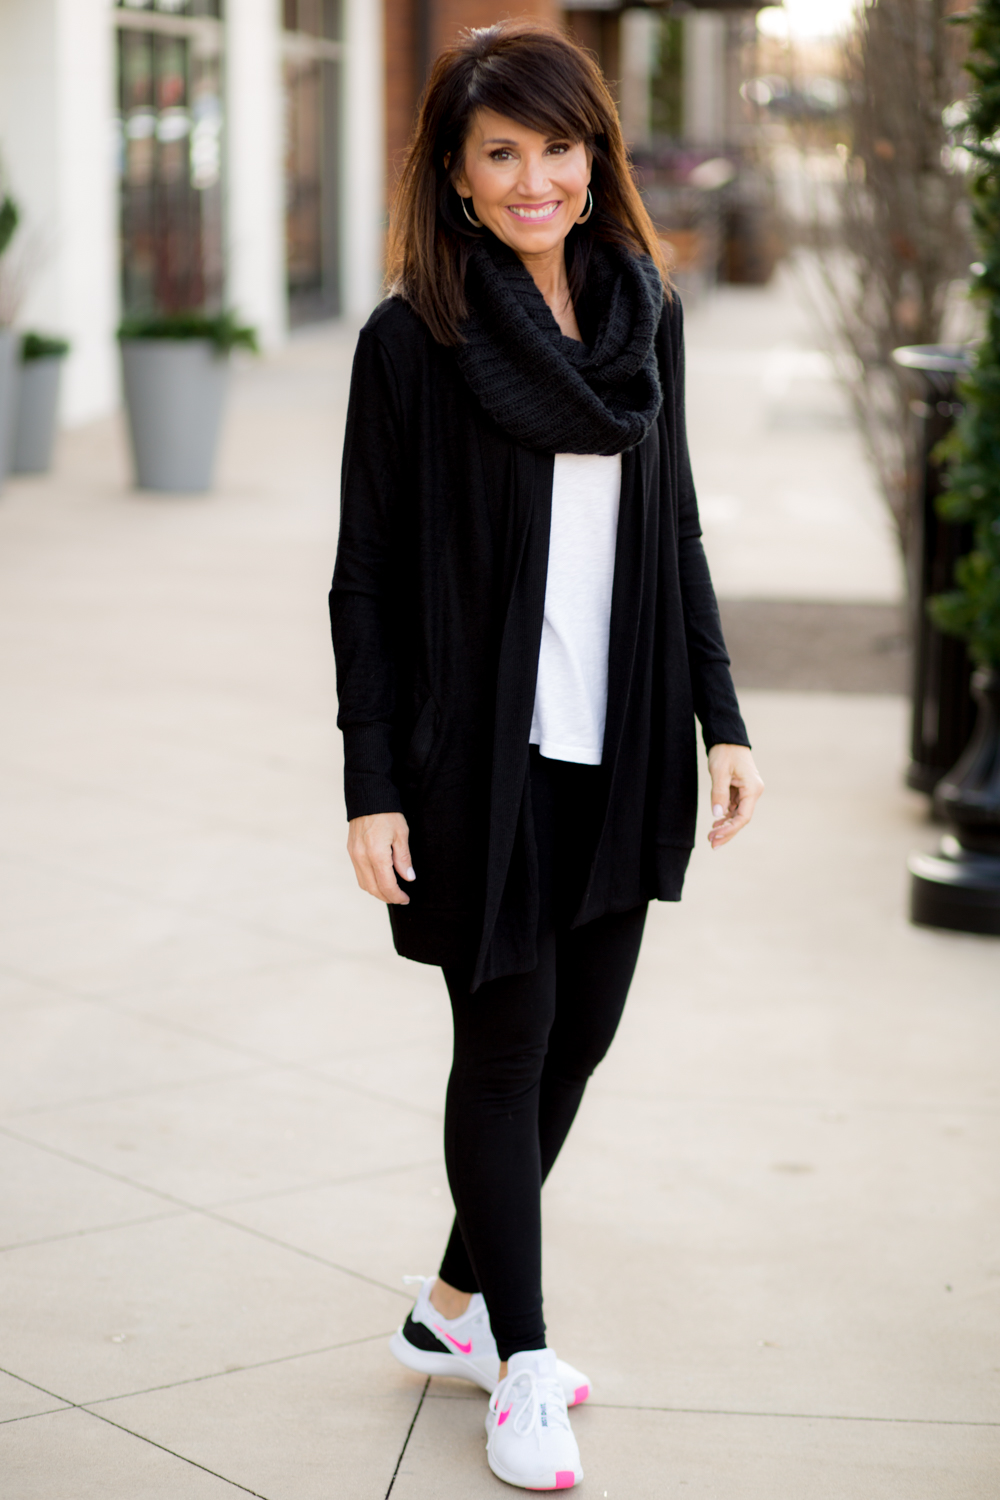 Two Athleisurewear Looks with Gibson